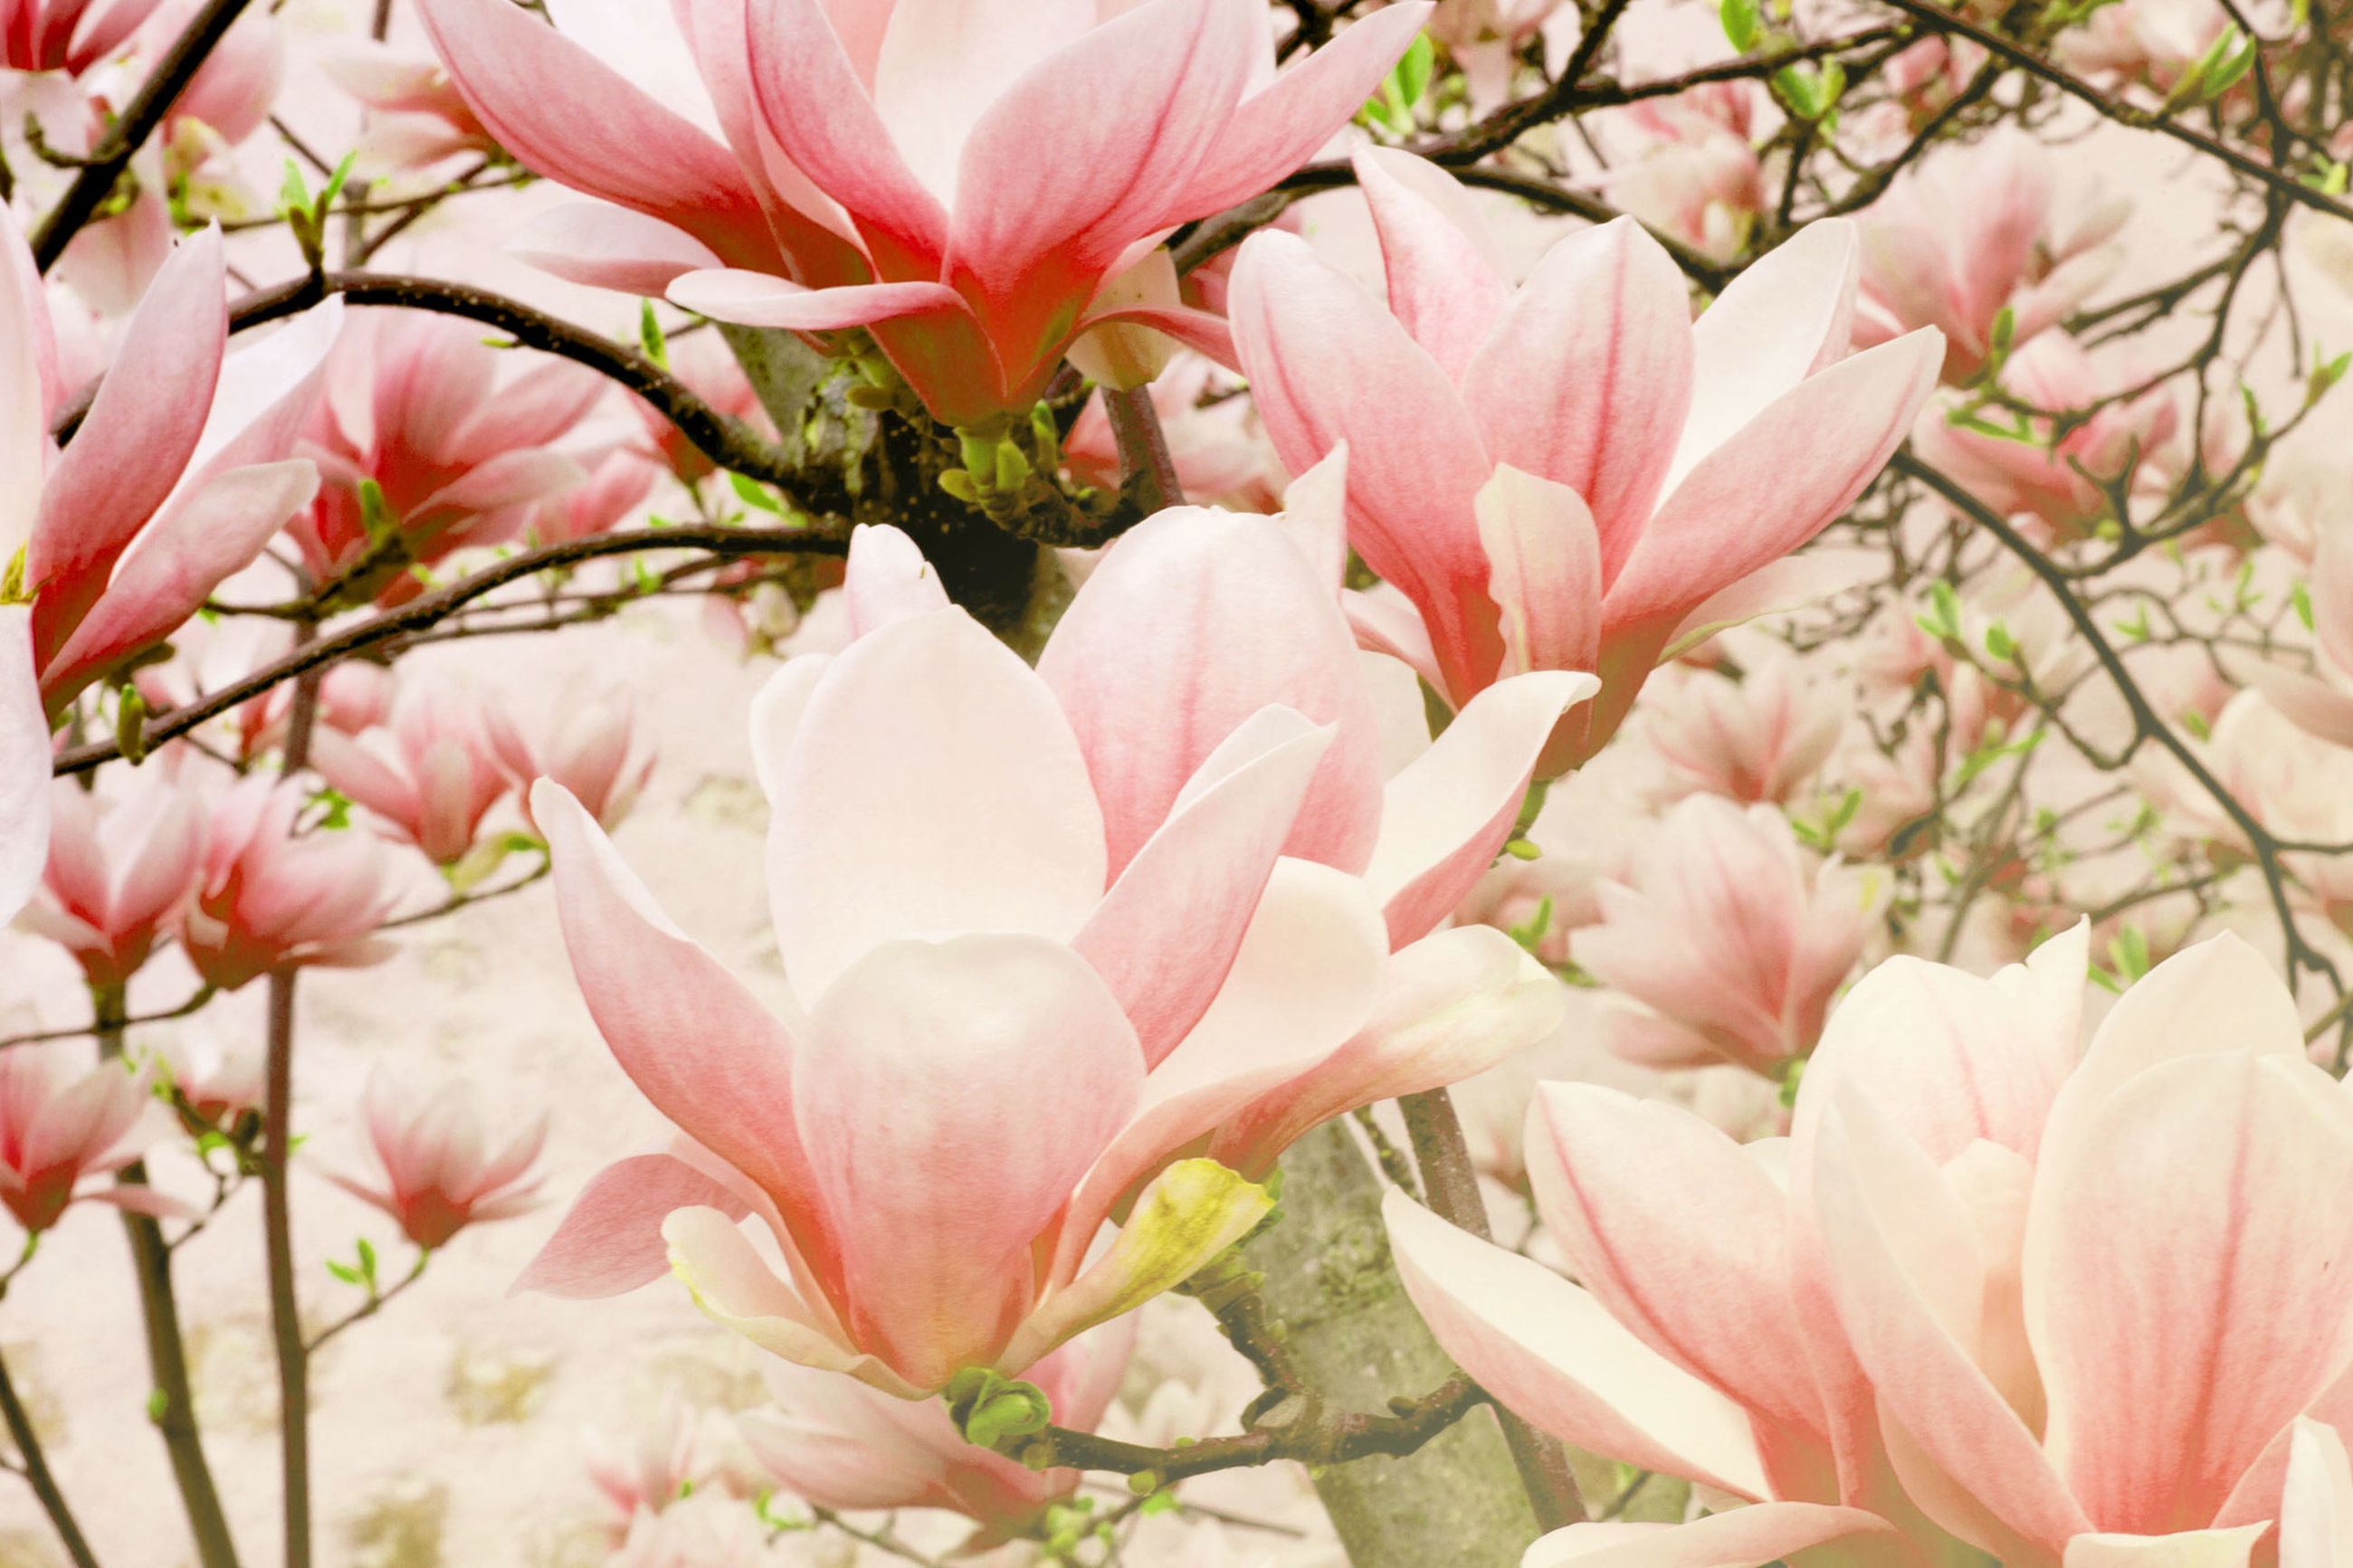 flower, flowering plant, plant, pink color, beauty in nature, fragility, vulnerability, freshness, growth, petal, close-up, inflorescence, no people, springtime, nature, day, blossom, flower head, botany, tree, outdoors, cherry blossom, spring